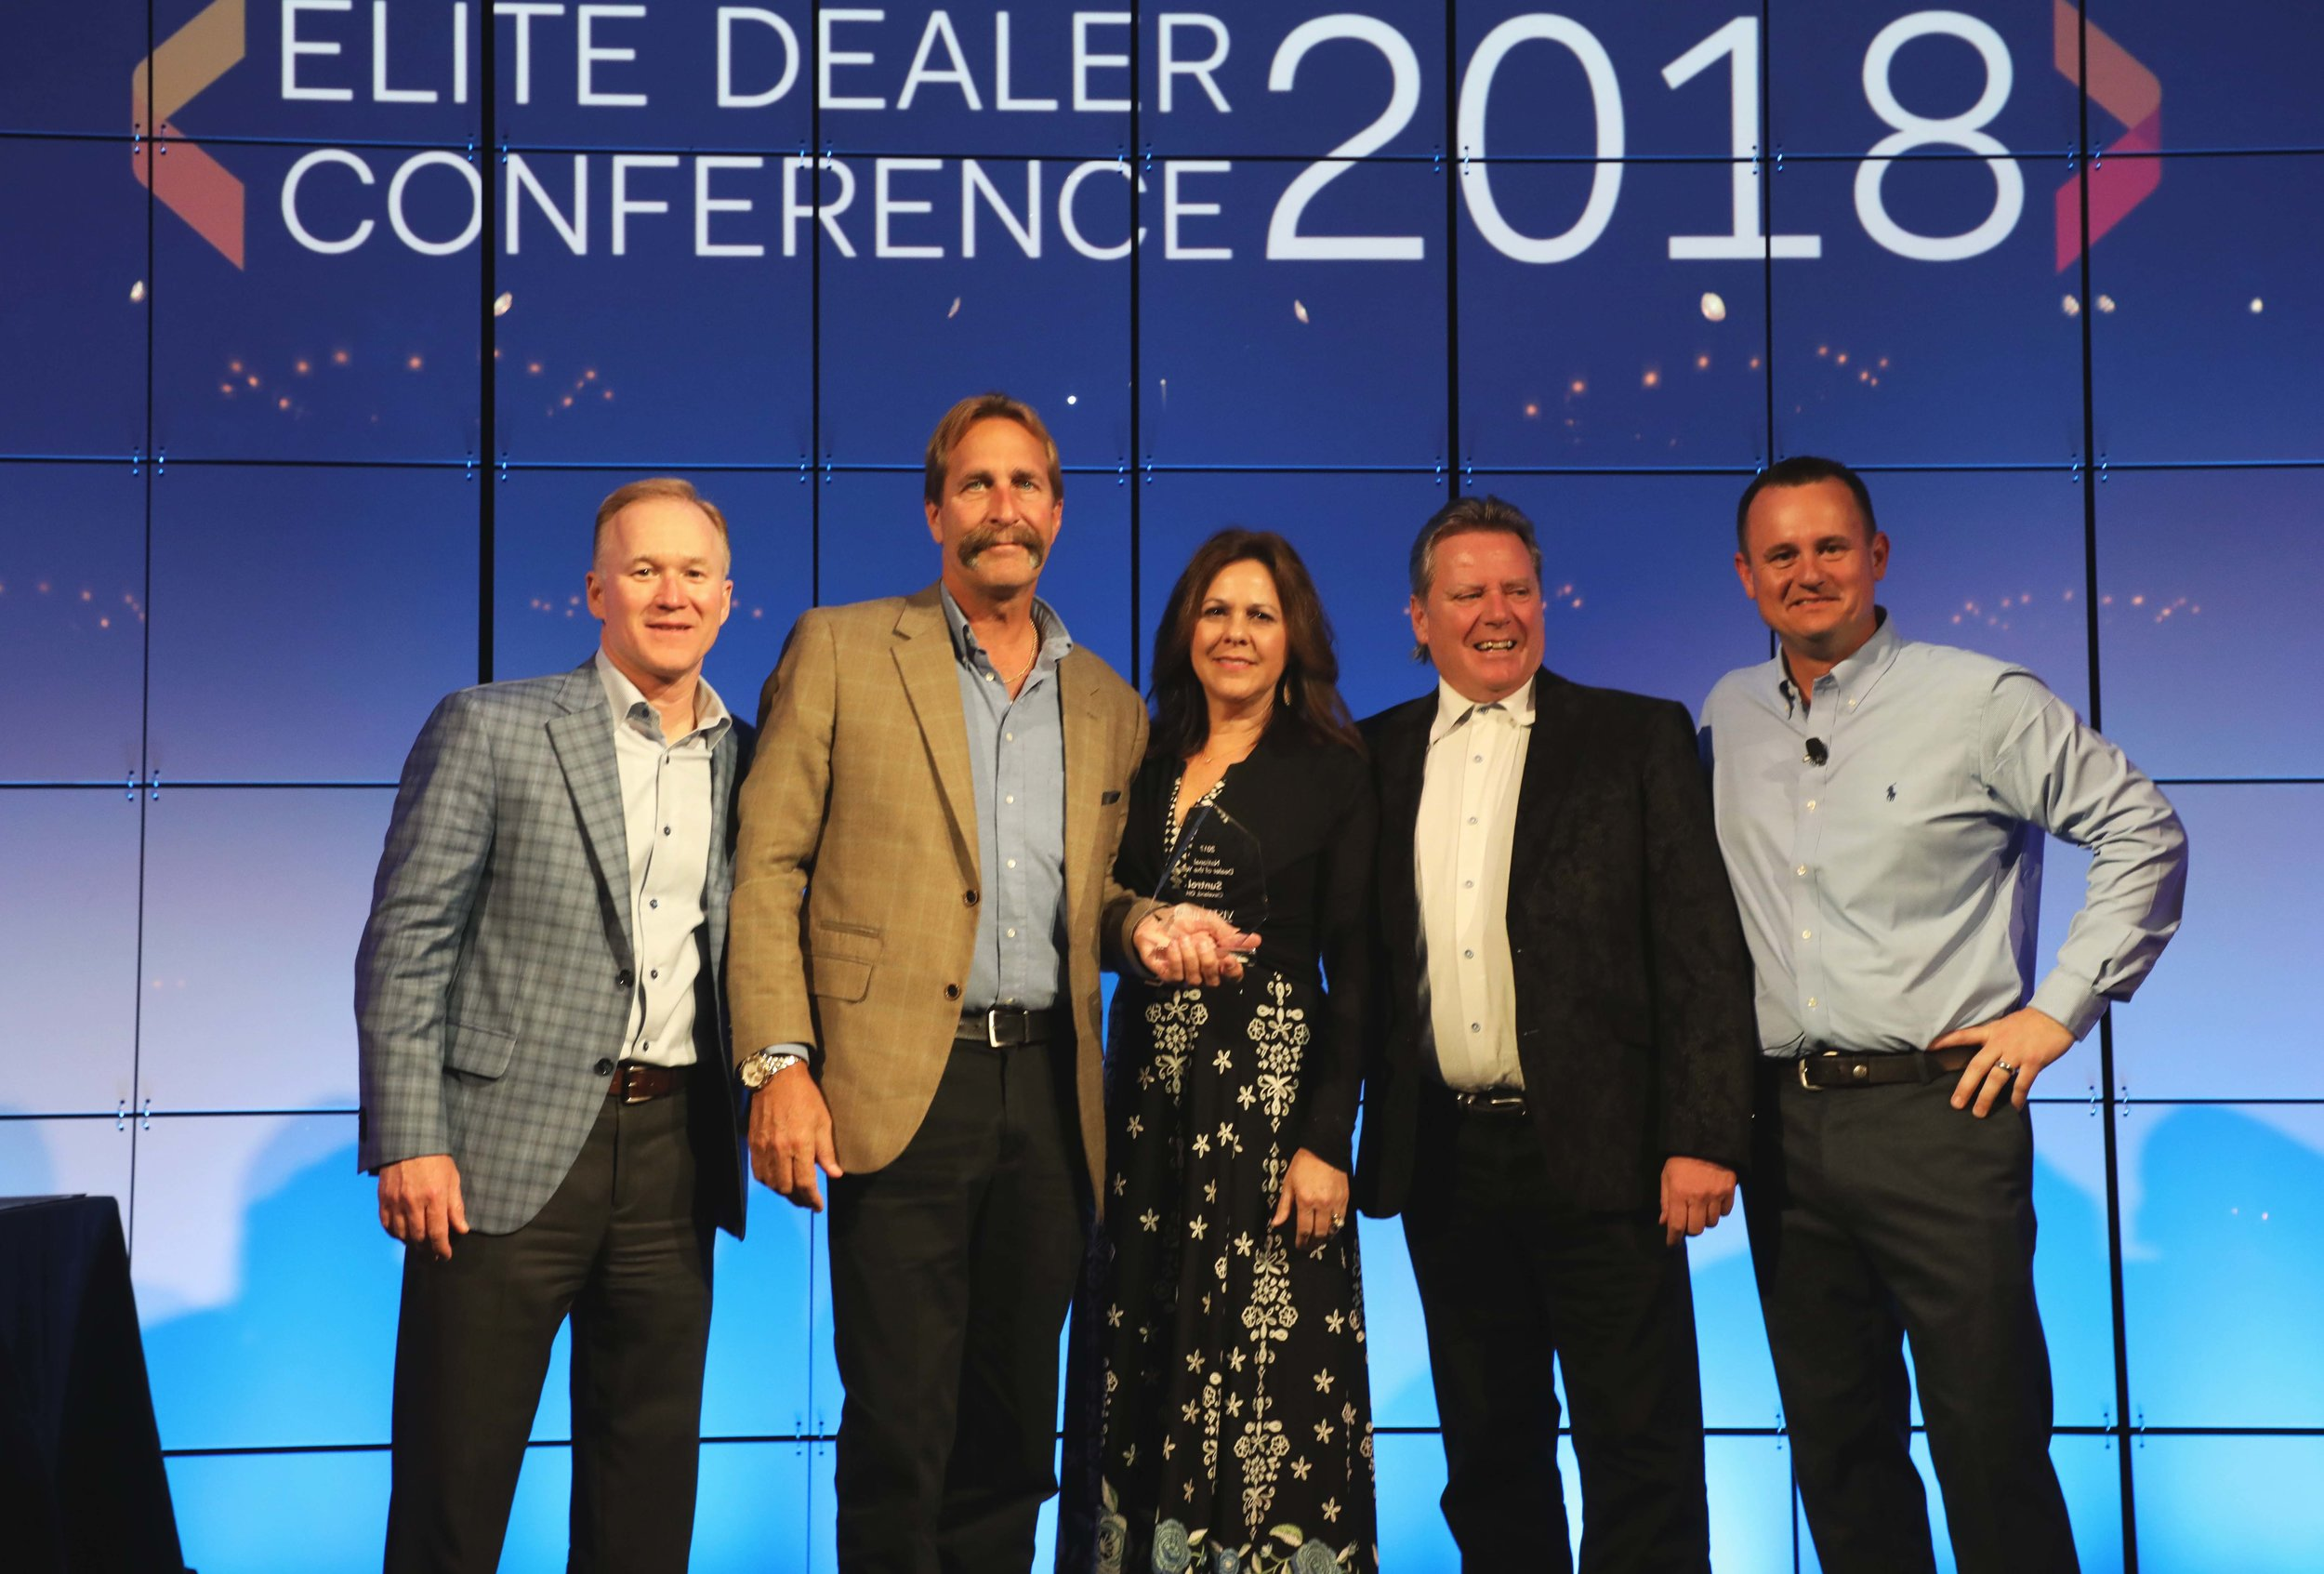 SUNTROL EARNS EASTMAN'S COVETED NATIONAL DEALER OF THE YEAR AWARD (2017)